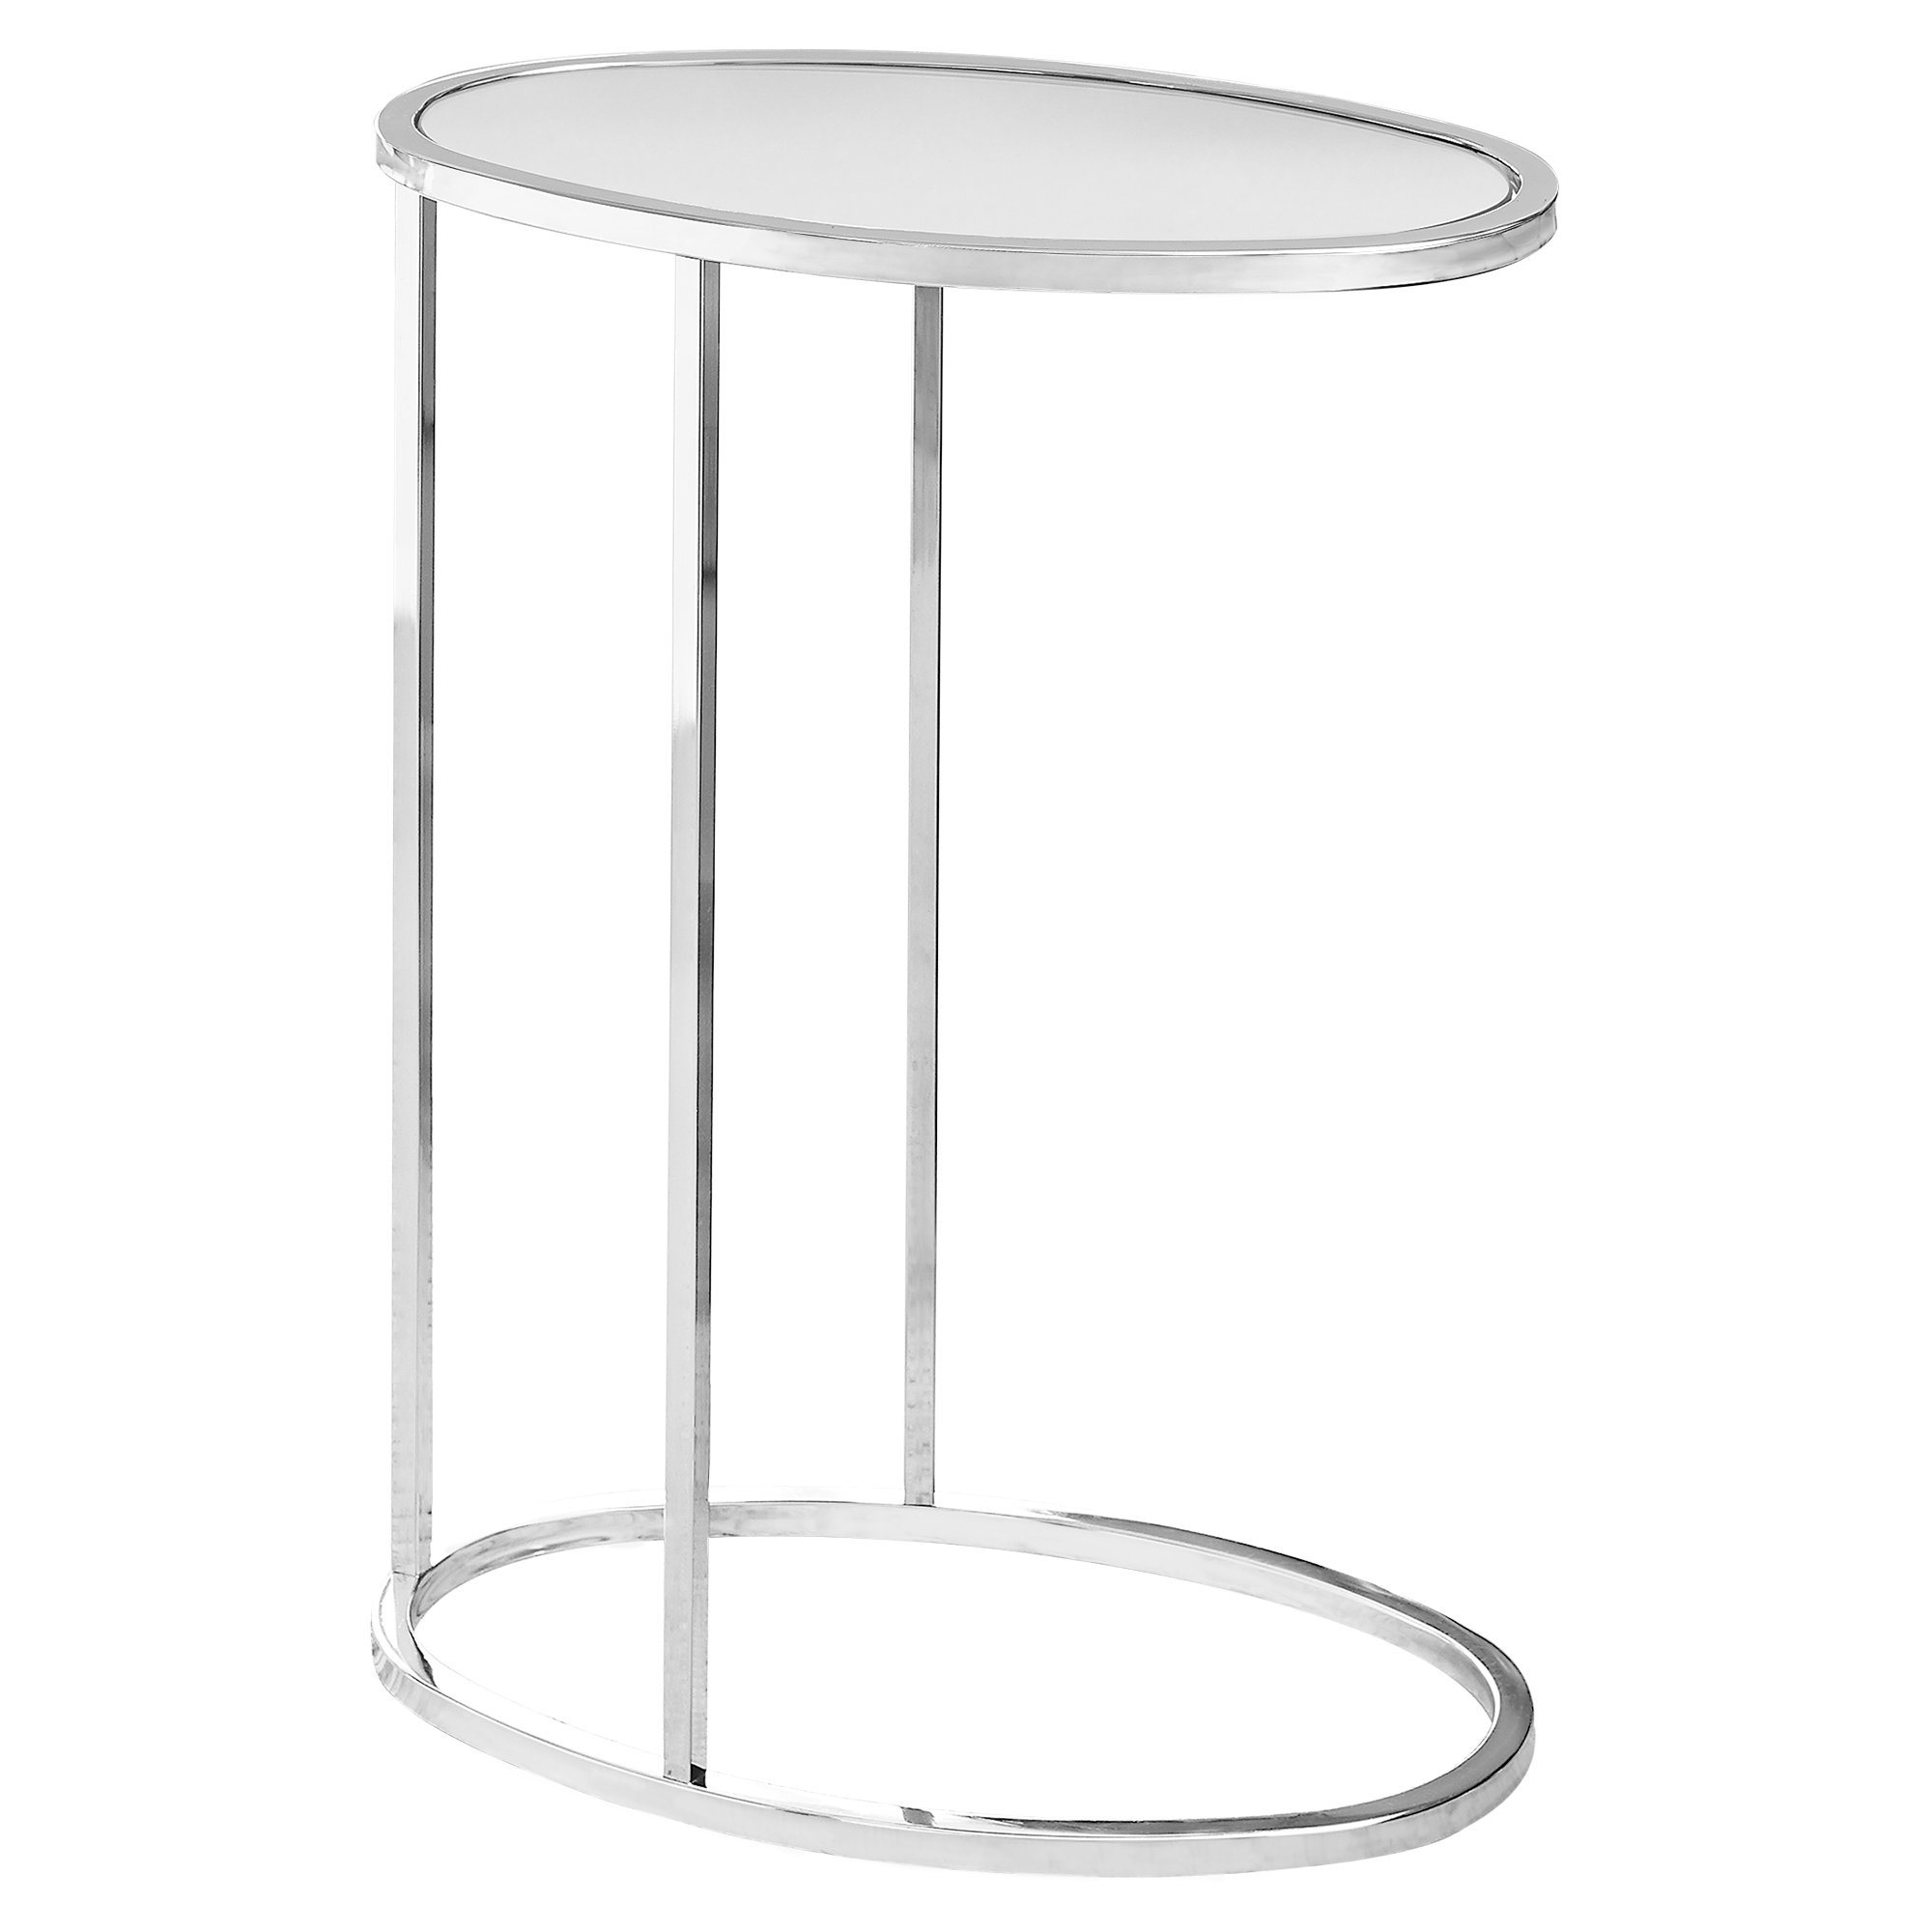 Accent Table - Oval / Mirror With Chrome Metal